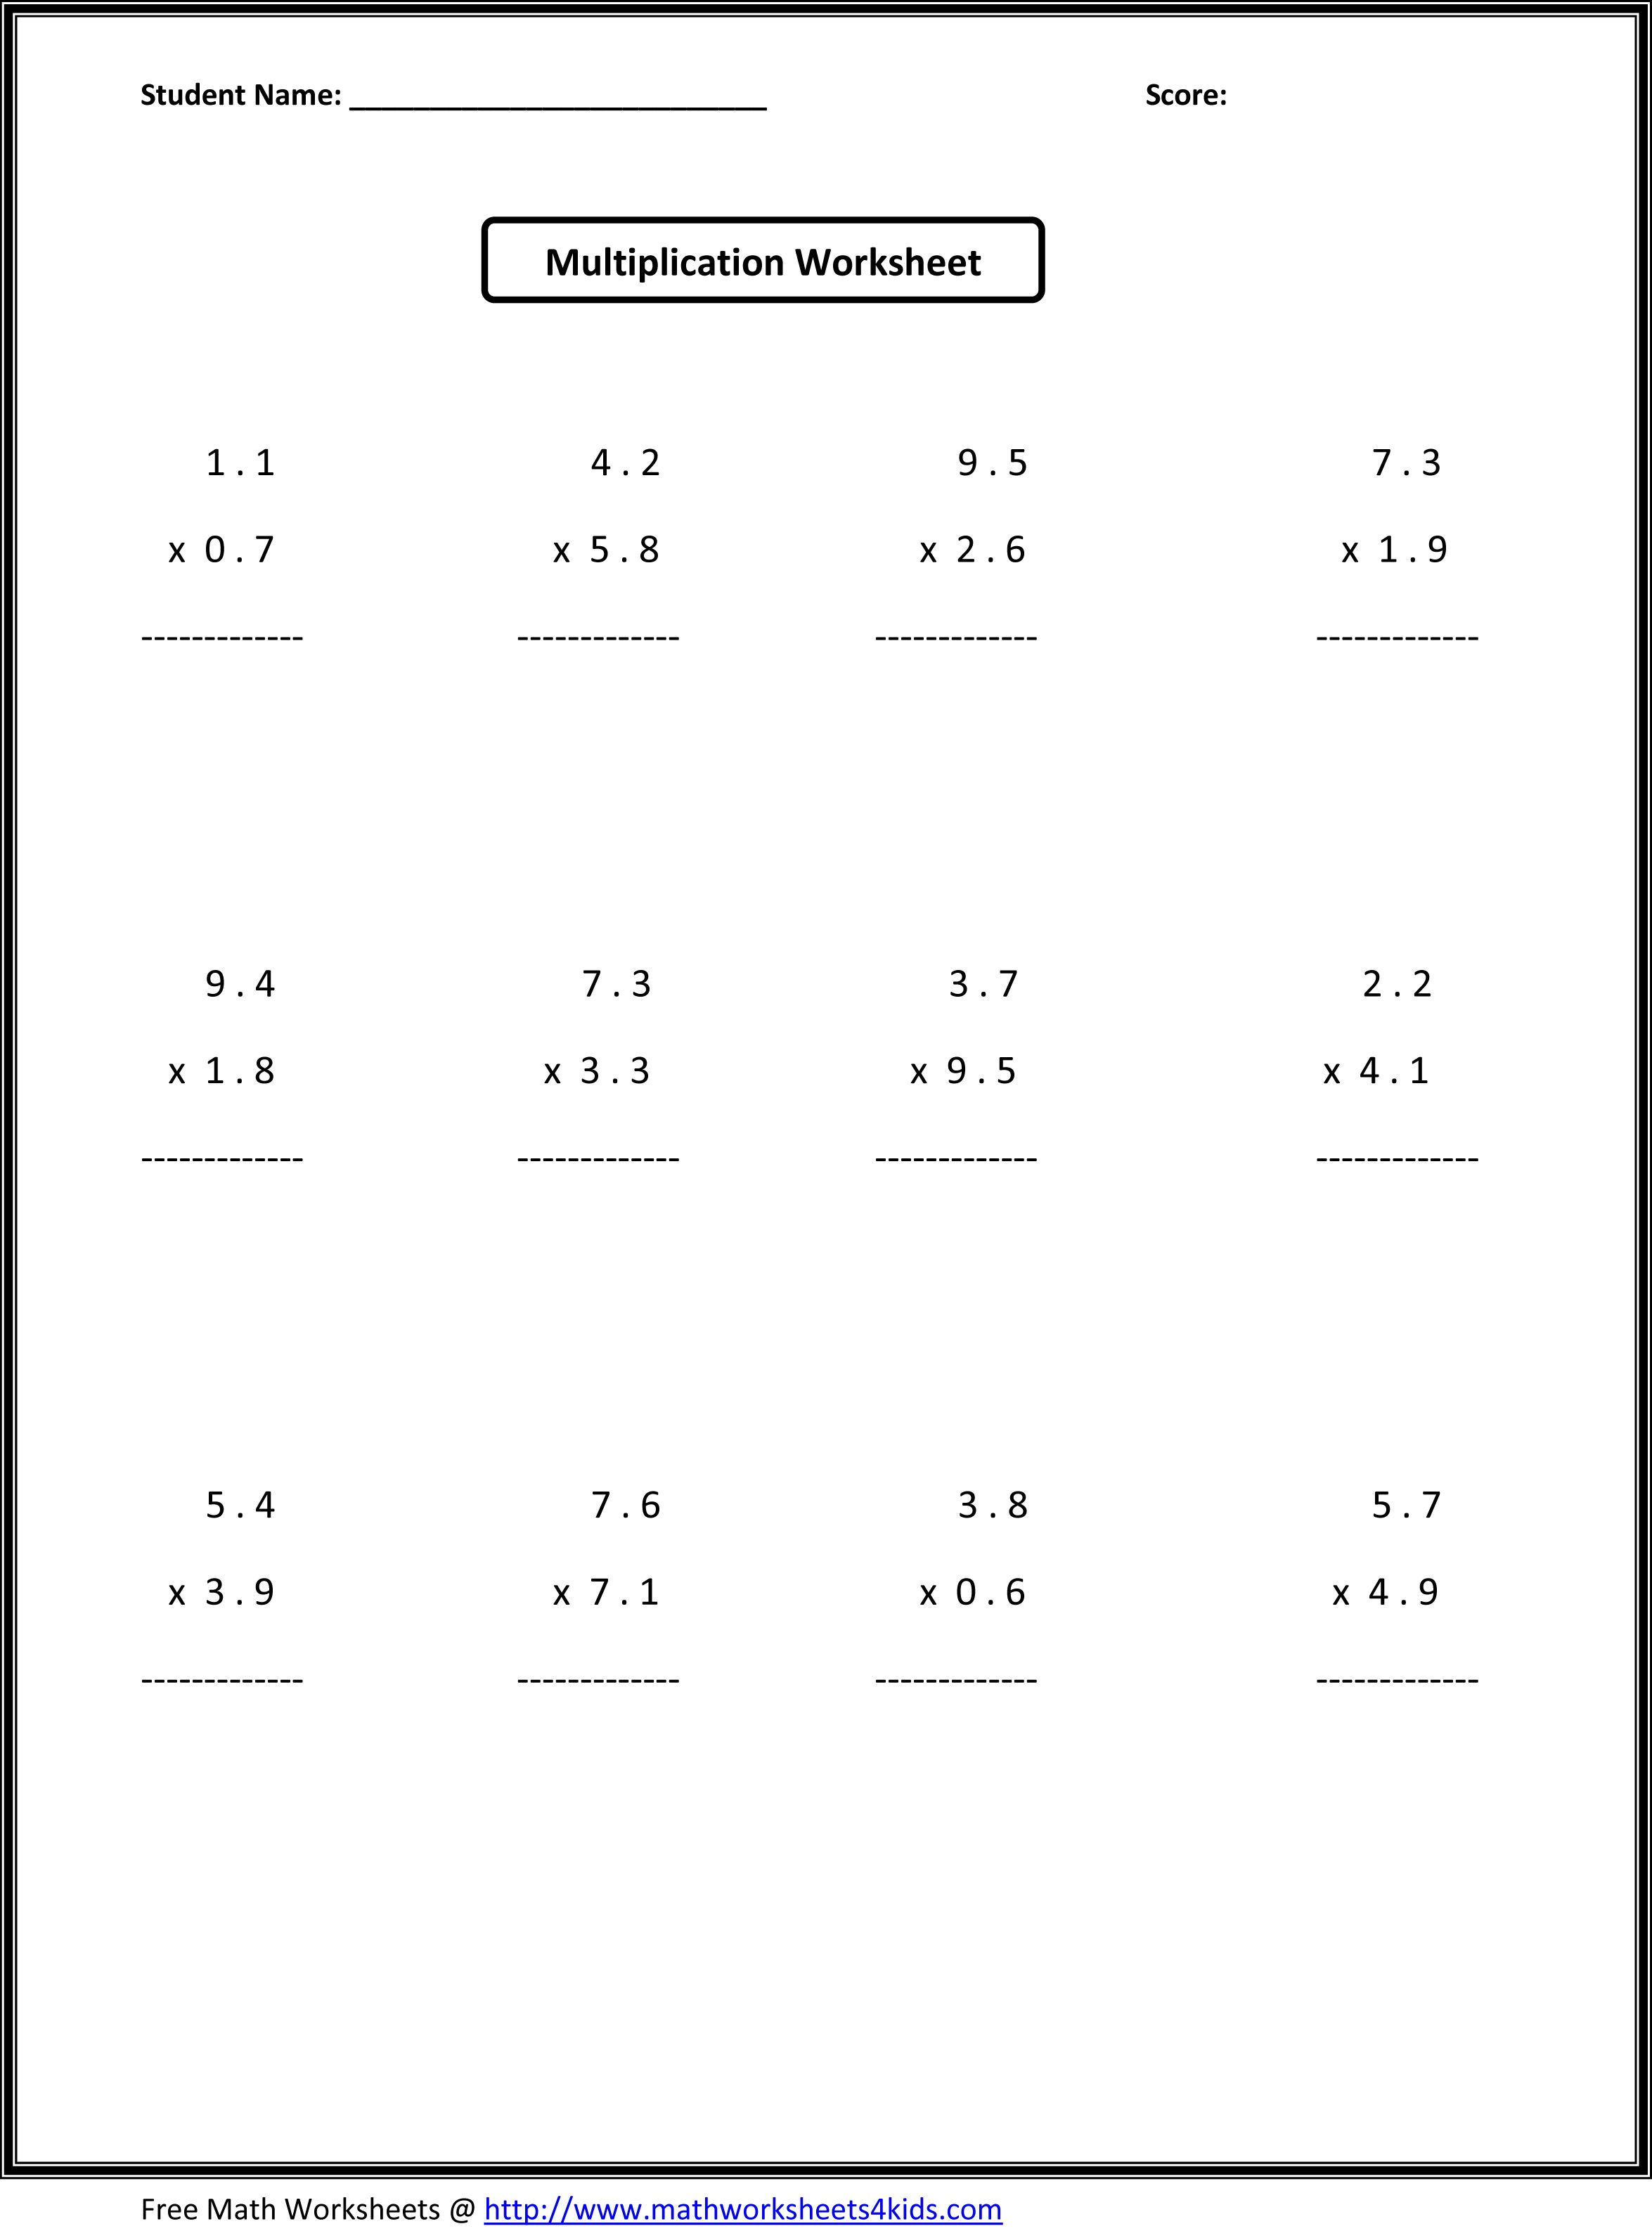 7th grade math worksheets – Grade 7 Math Worksheet